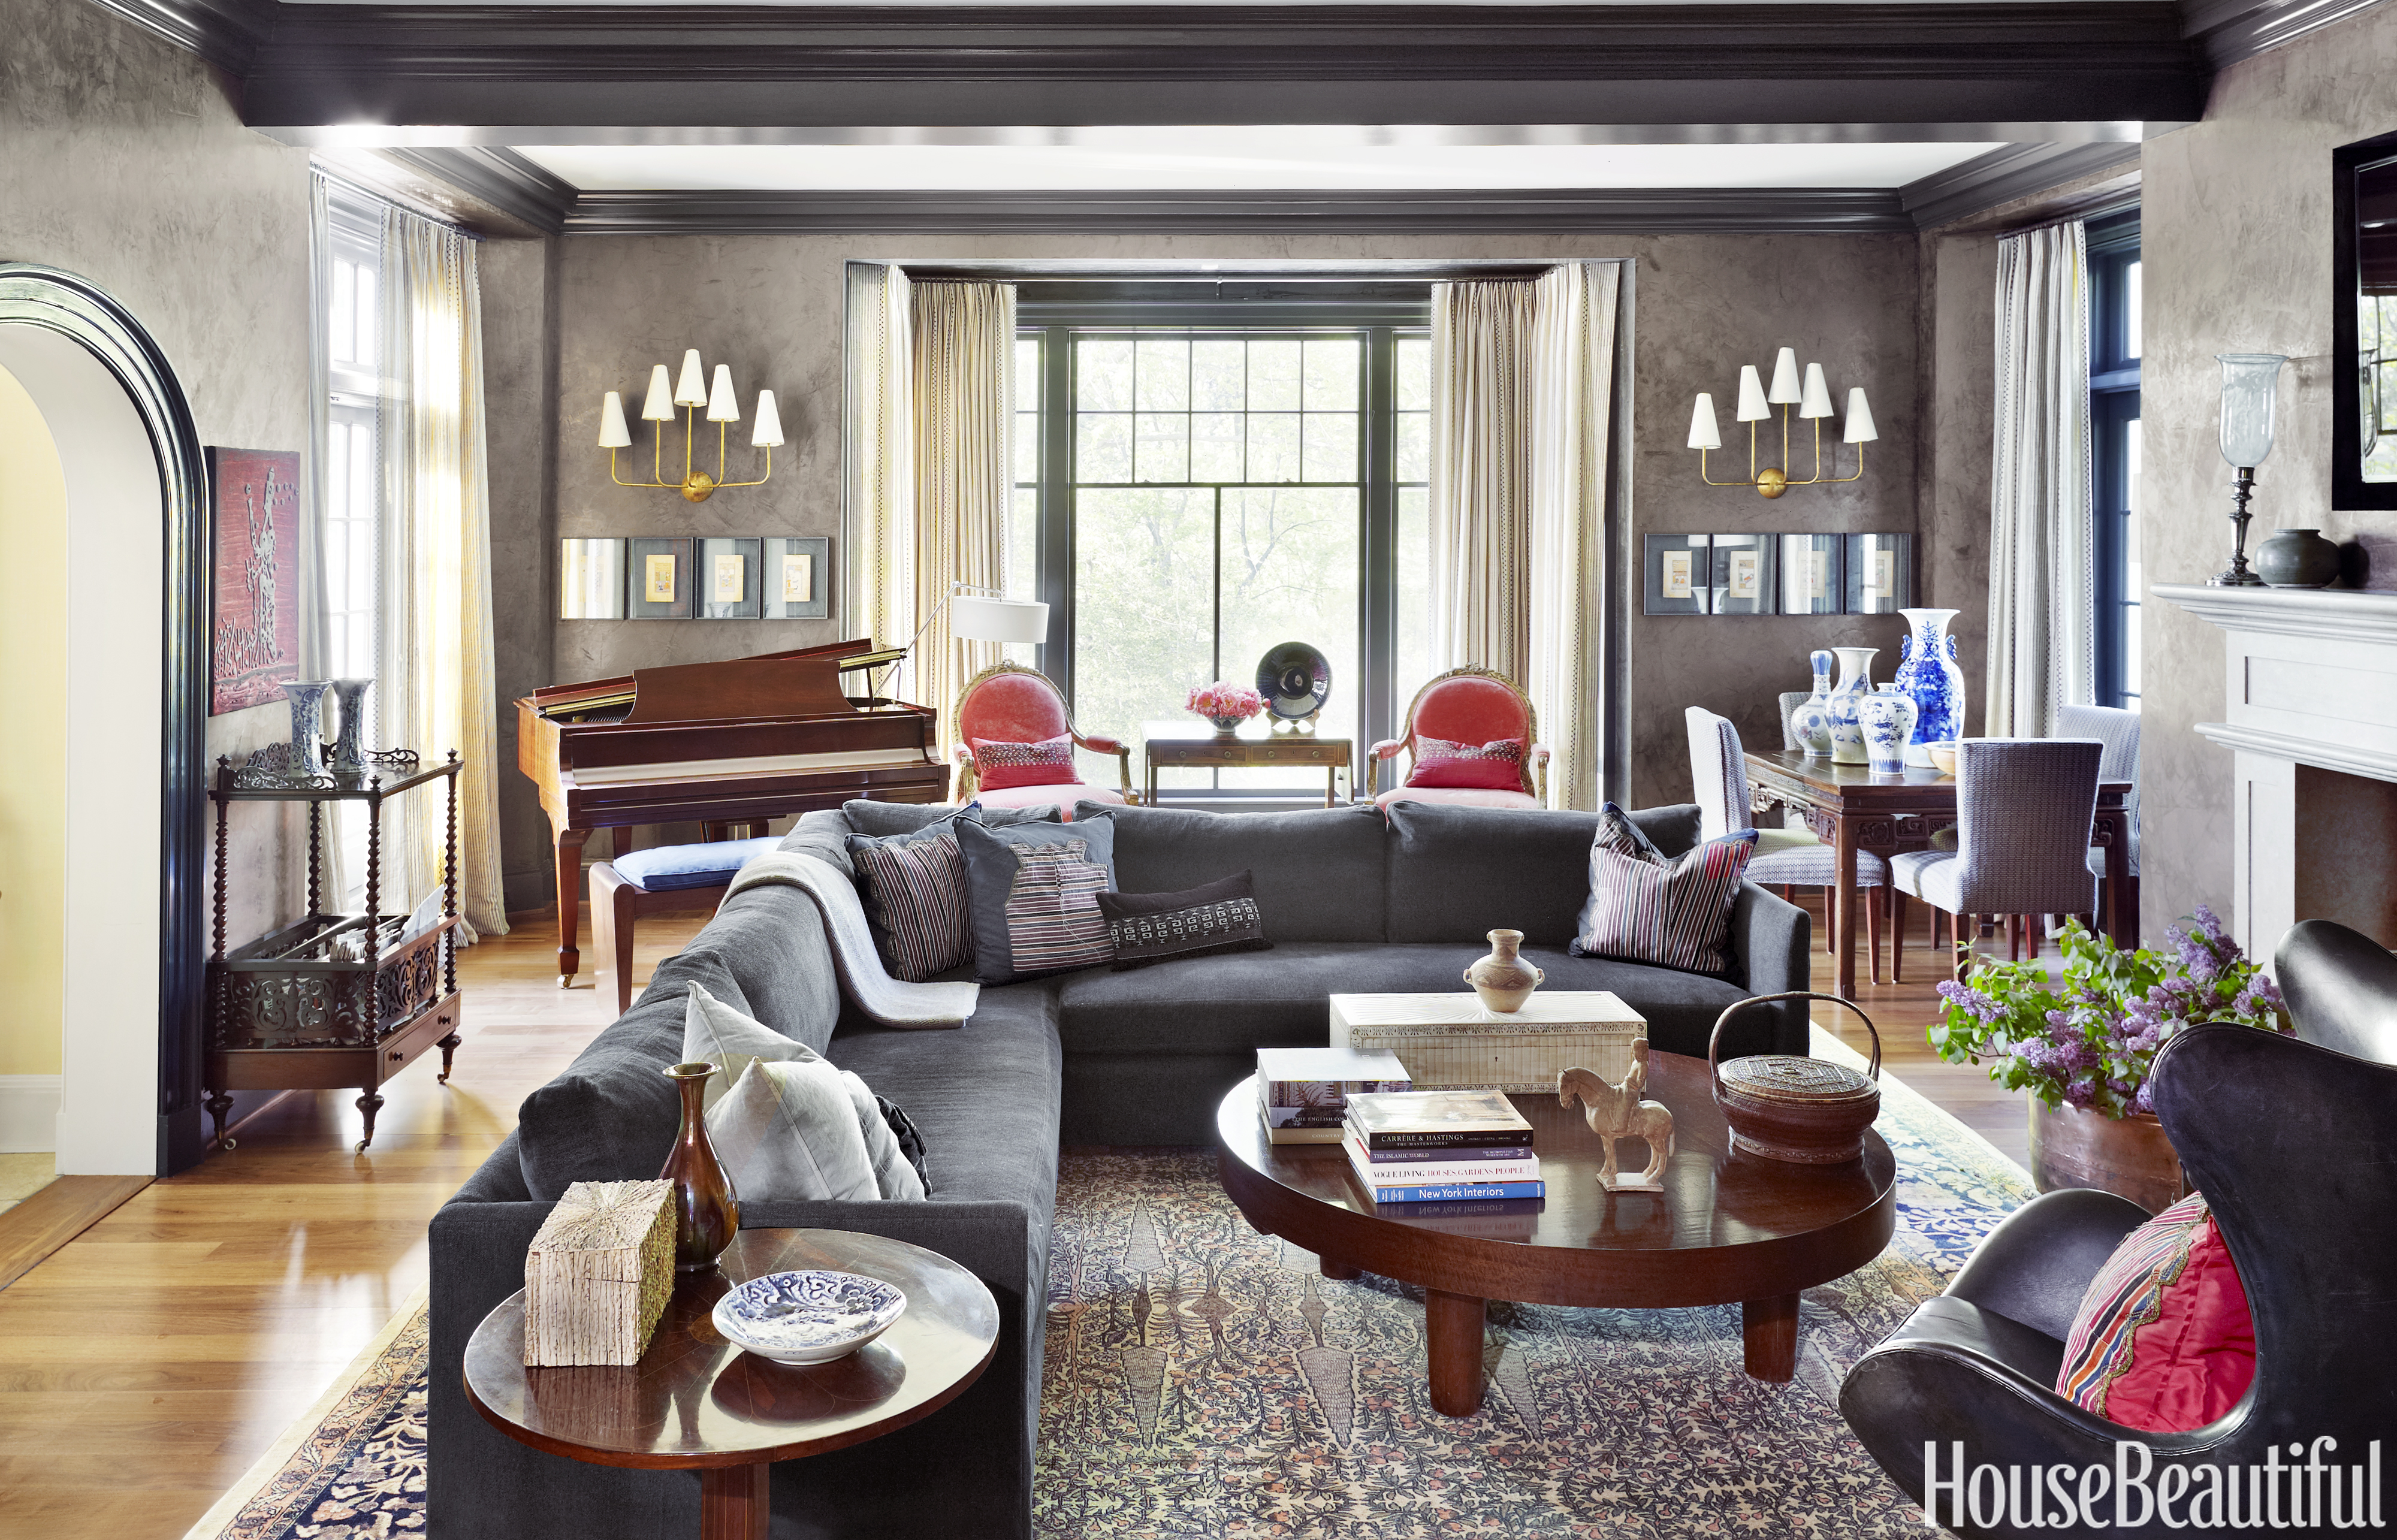 Old world style decorating interior designer mona hajj - House beautiful living room makeovers ...